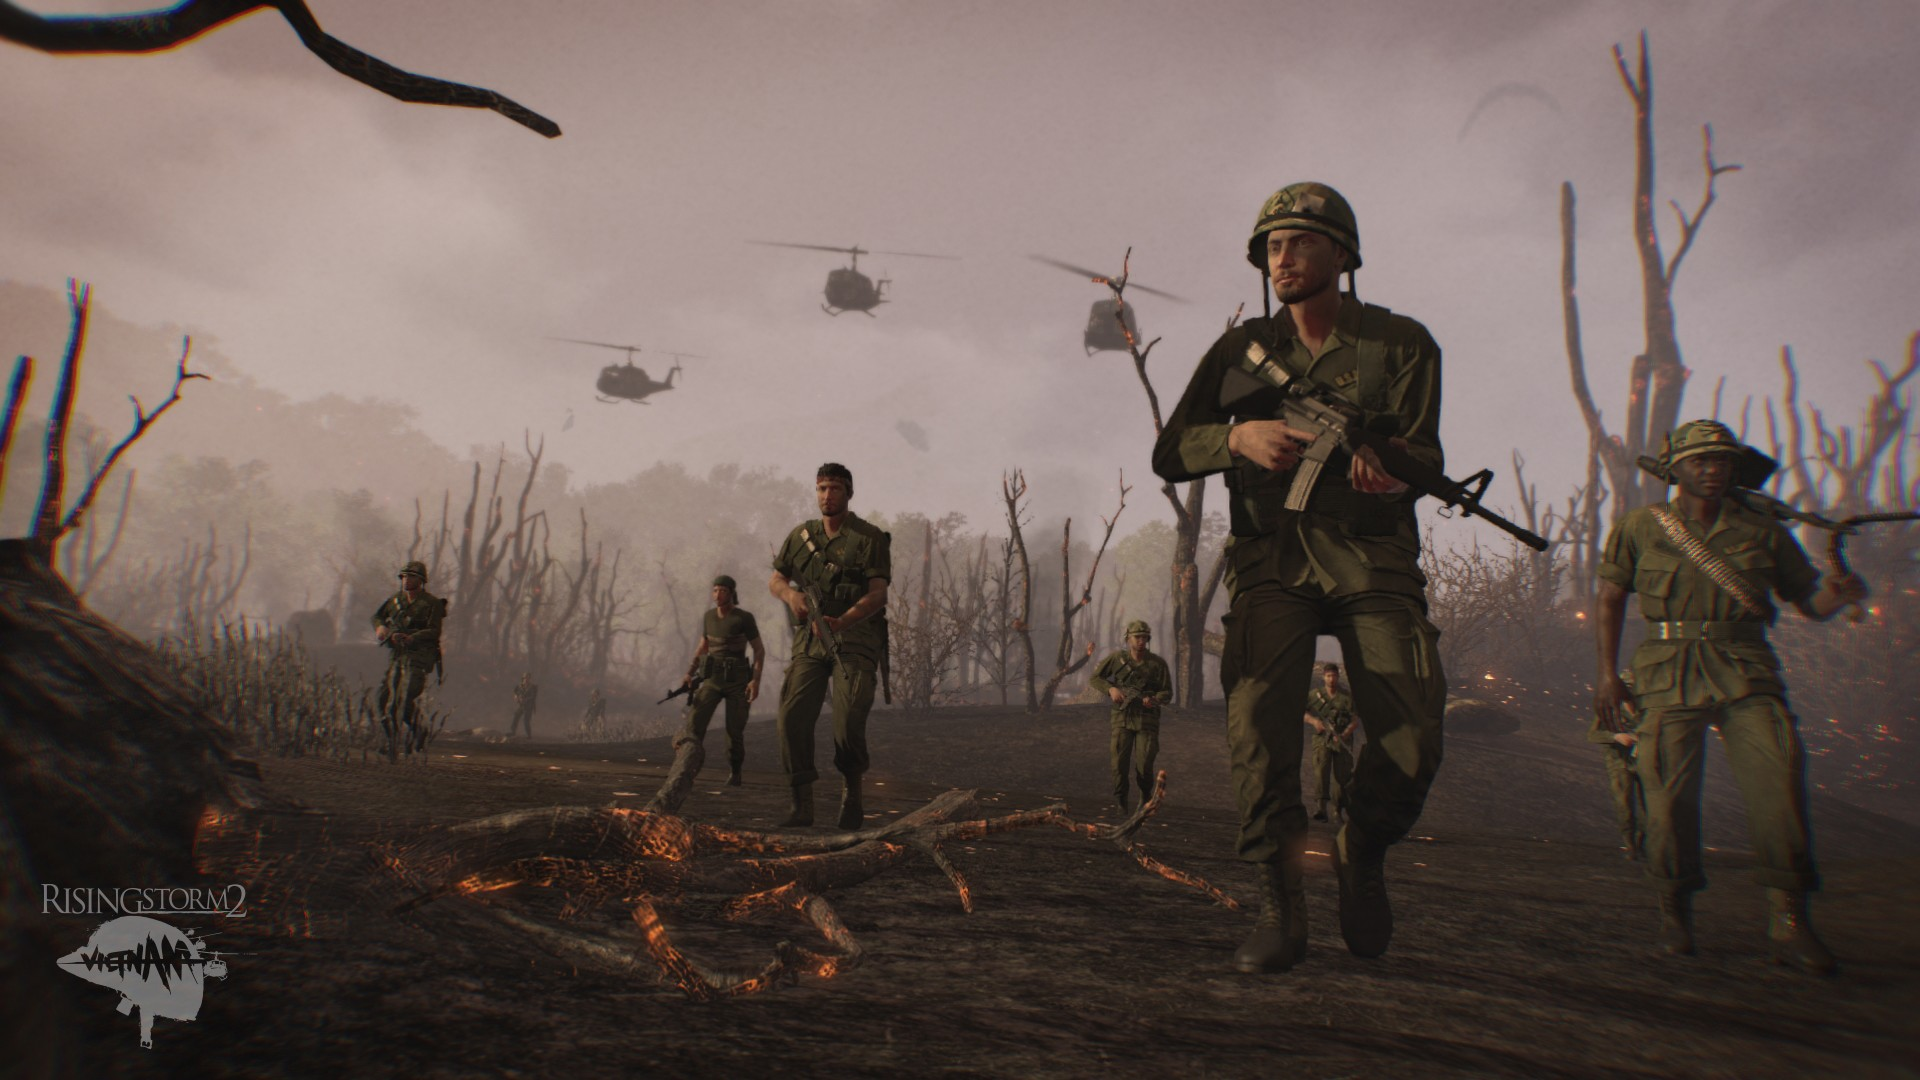 rising storm 2: vietnam gets multiplayer campaign mode where you can